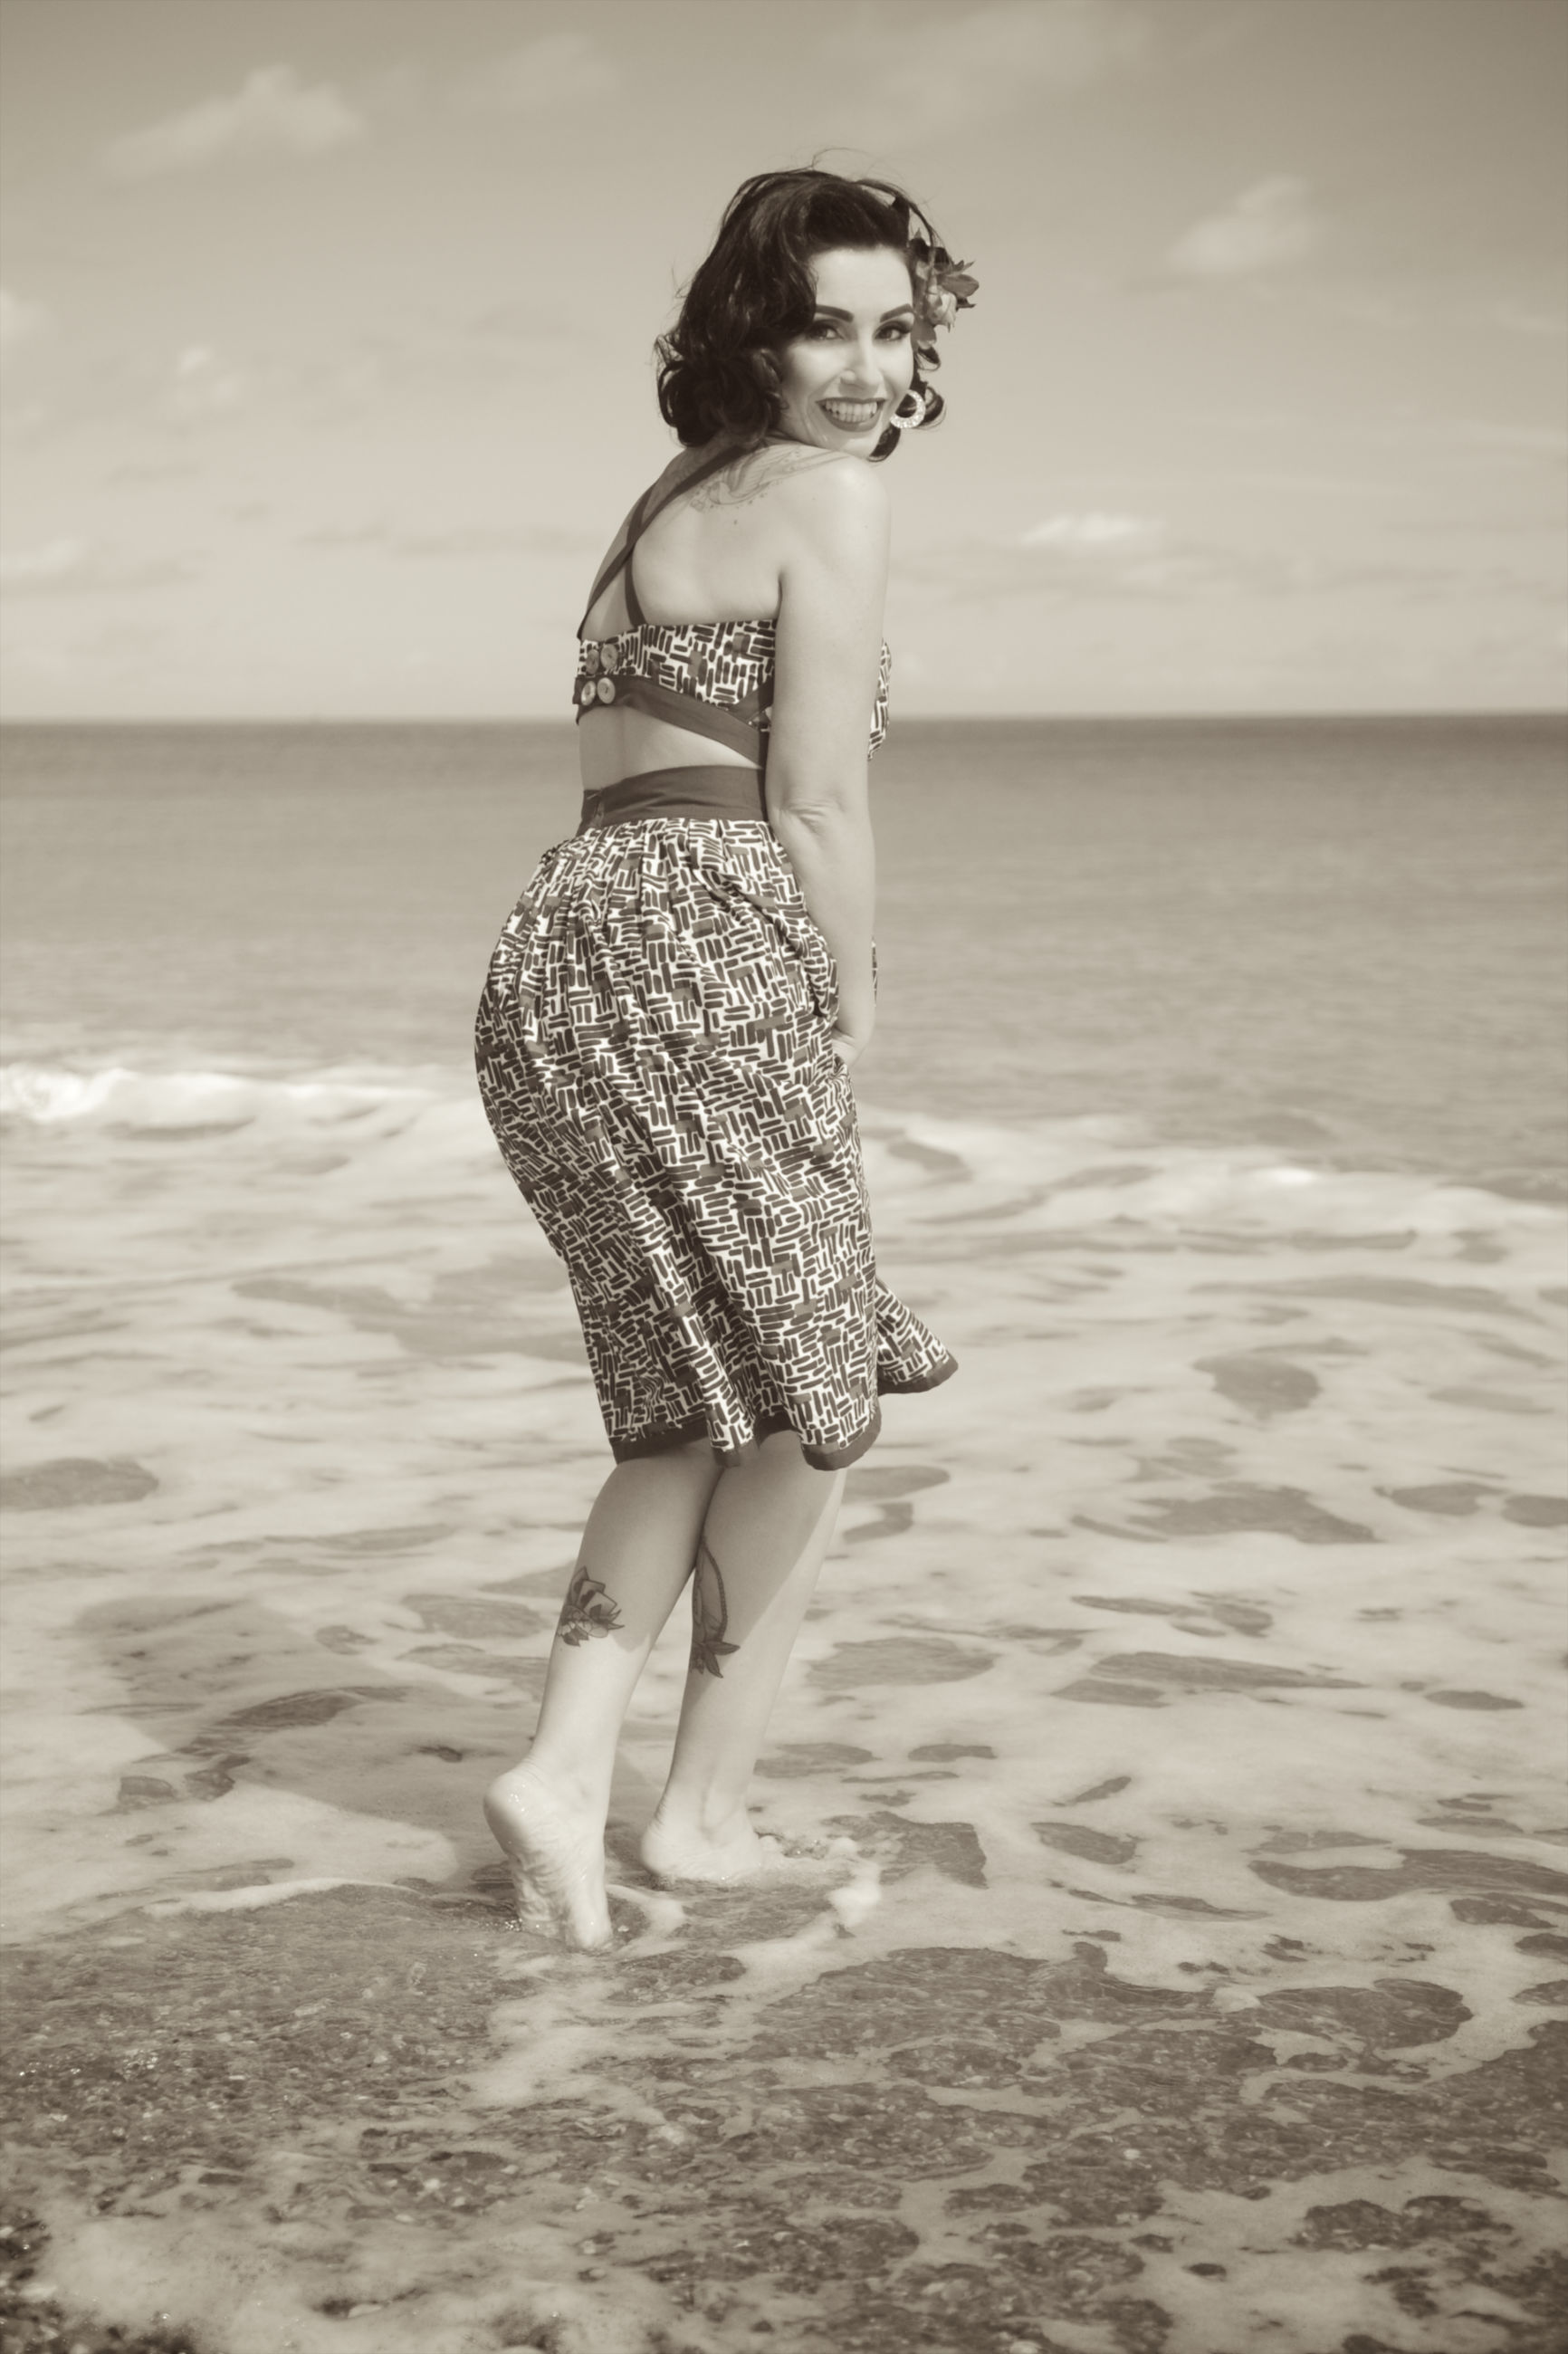 sea, water, young adult, beach, horizon over water, person, young women, full length, lifestyles, leisure activity, shore, vacations, sky, casual clothing, standing, bikini, sand